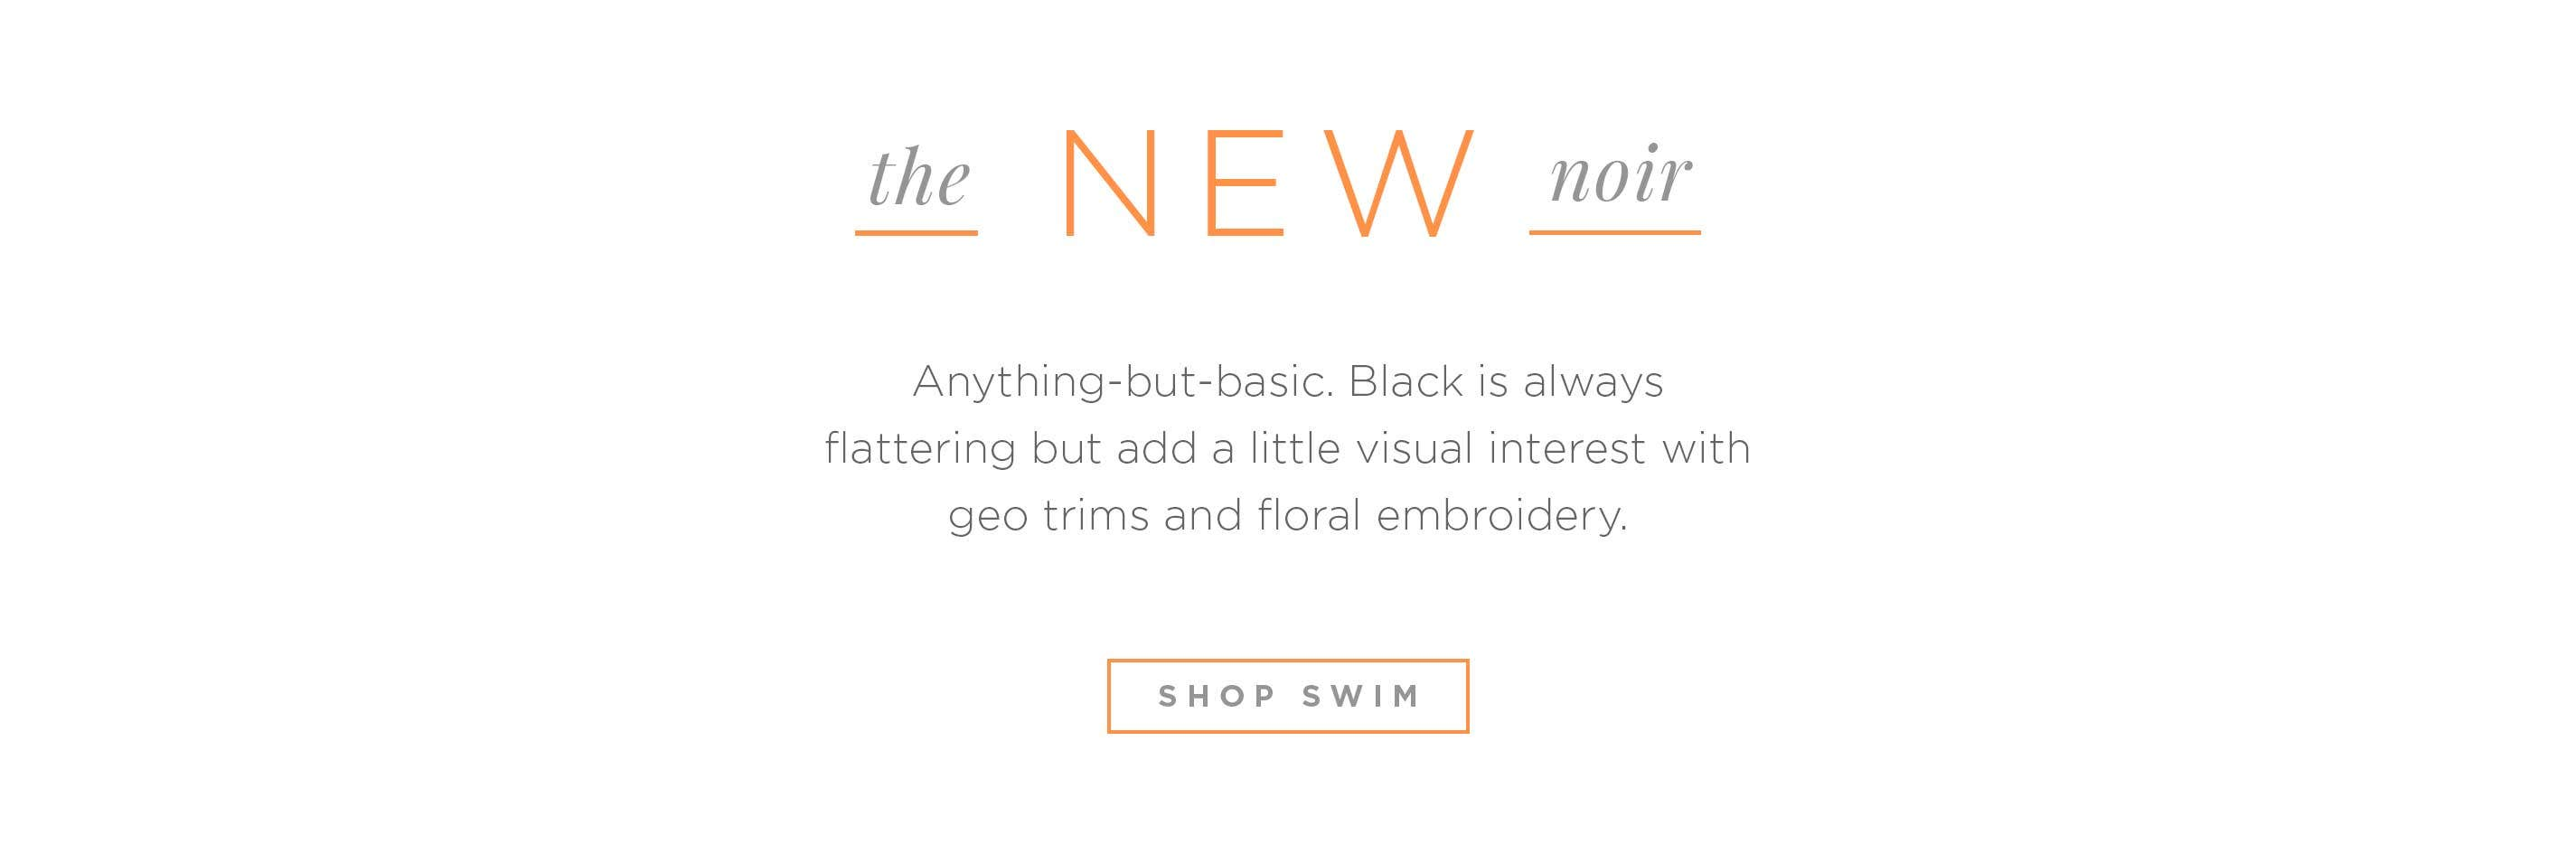 The New Noir - Anything-but-basic. Black is always flattering but add a little visual interest with geo trims and floral embroidery. Shop Swim.